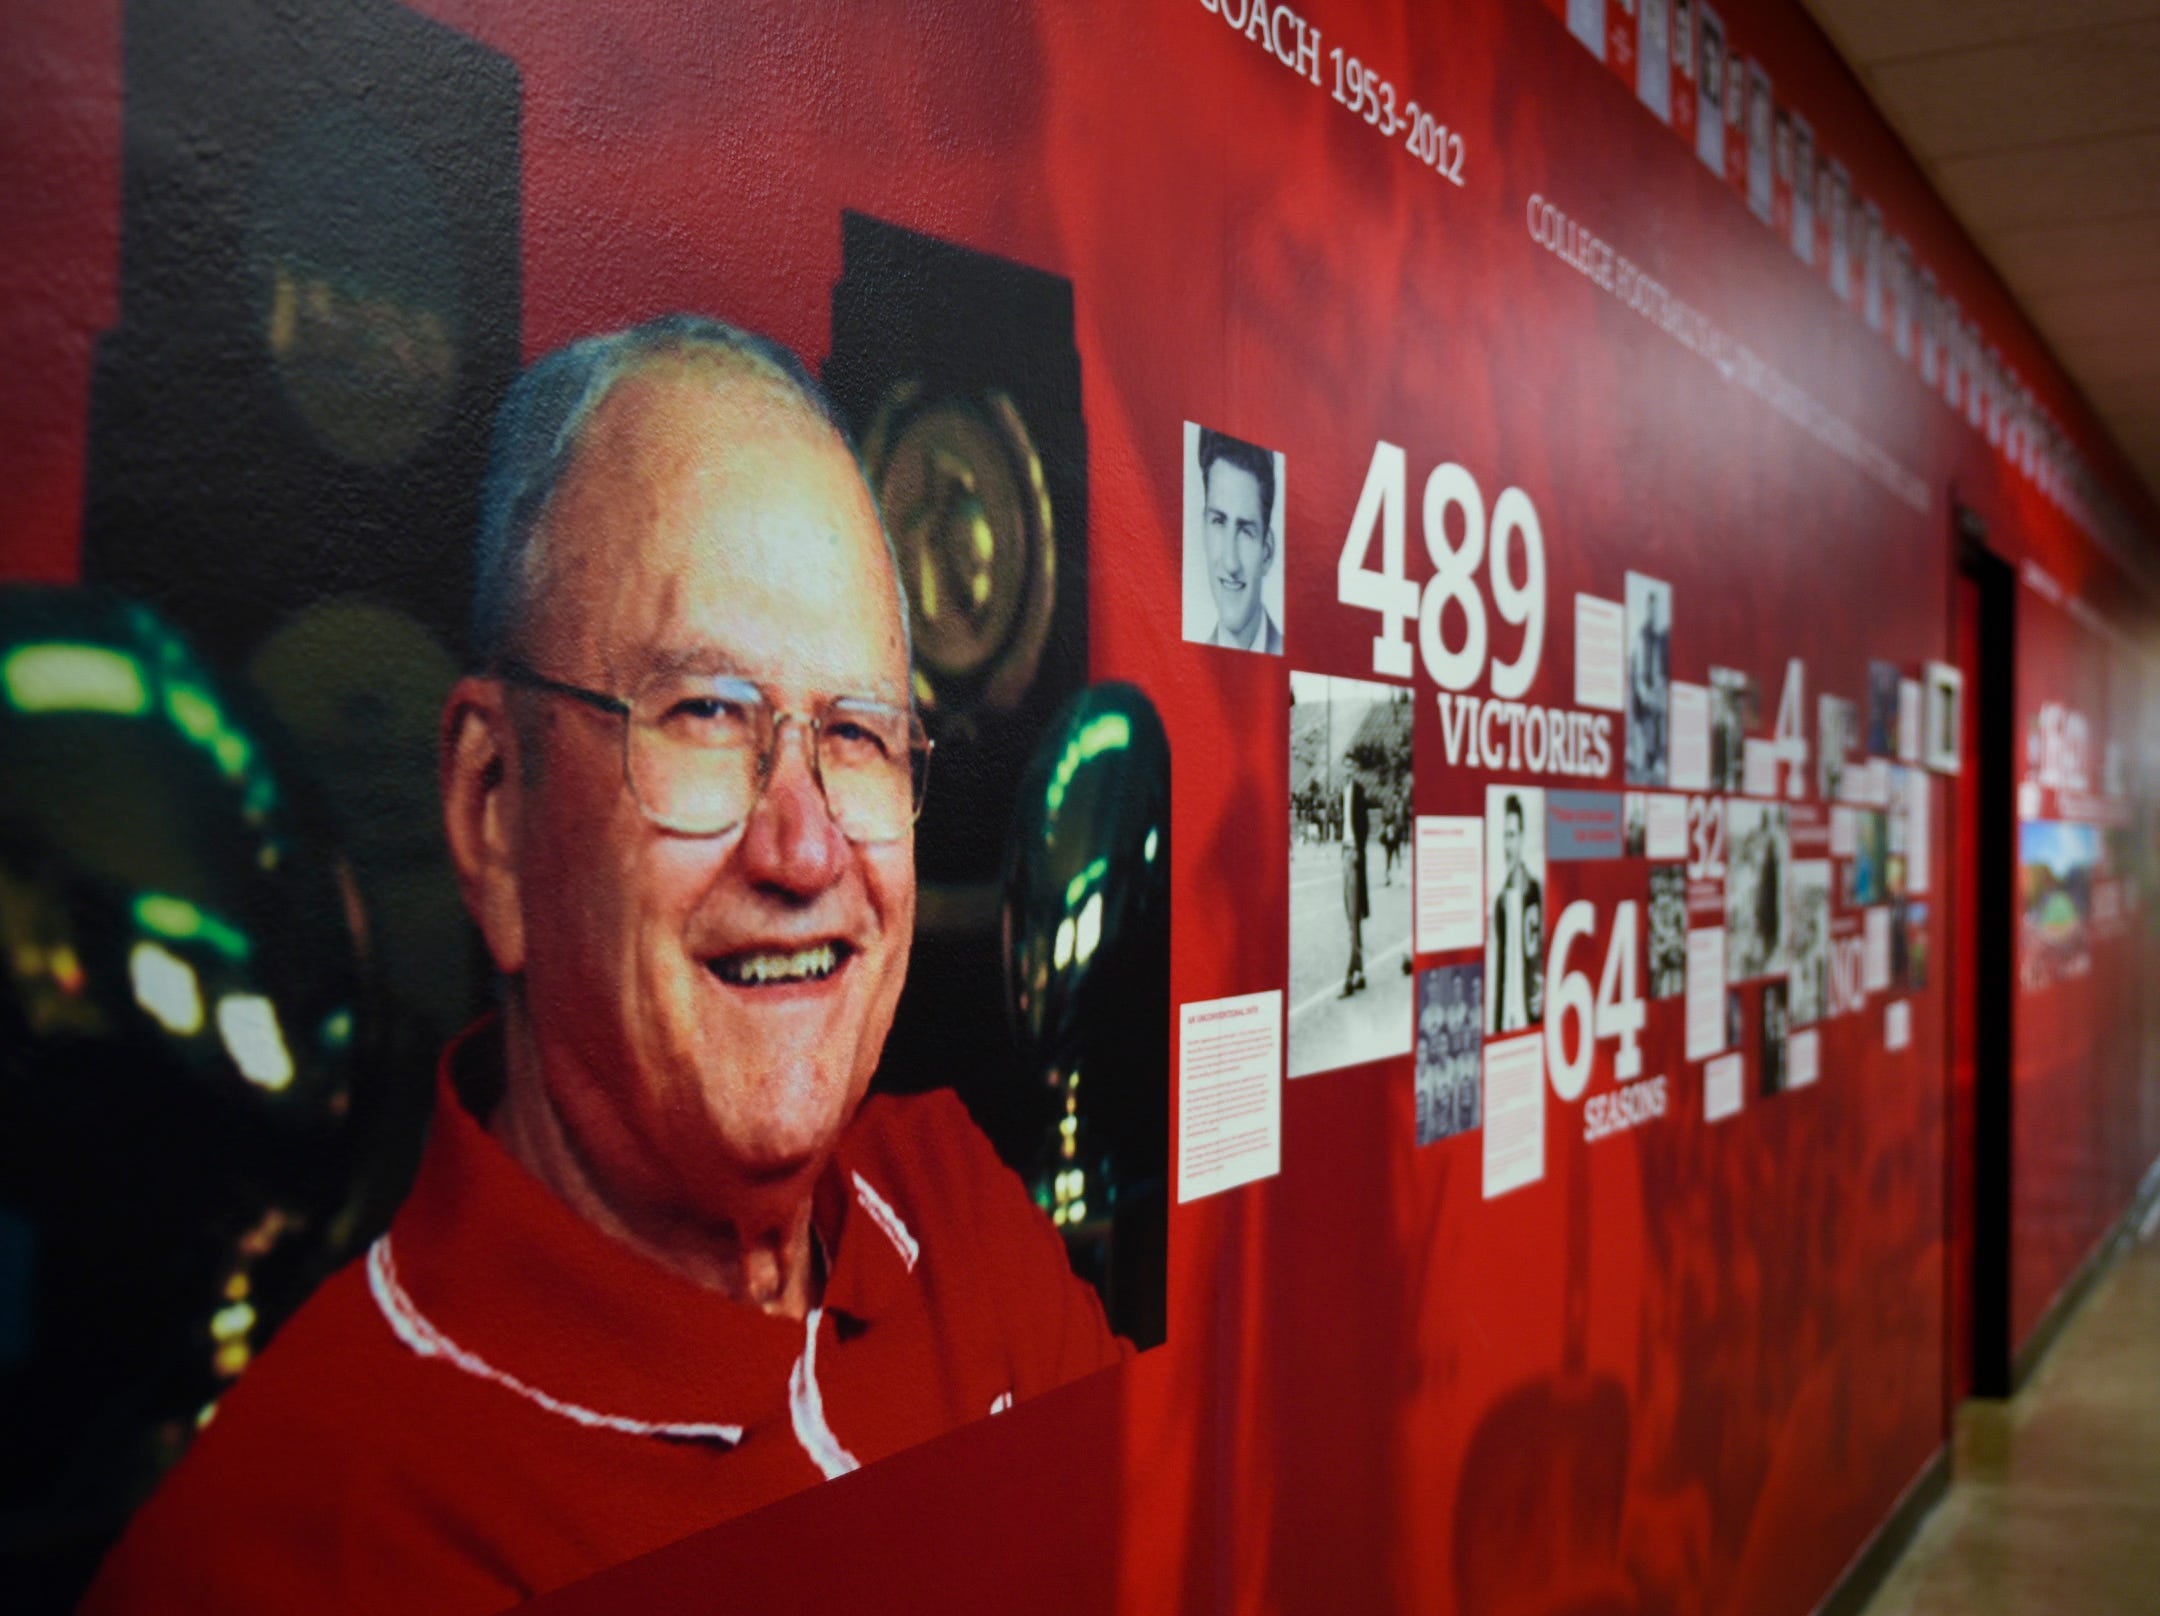 A mural depicting long time St. John's University football coach John Gagliardi's accomplishments lines the hallway of the sports department near his office Monday, Oct. 15, at the St. John's Abbey in Collegeville.